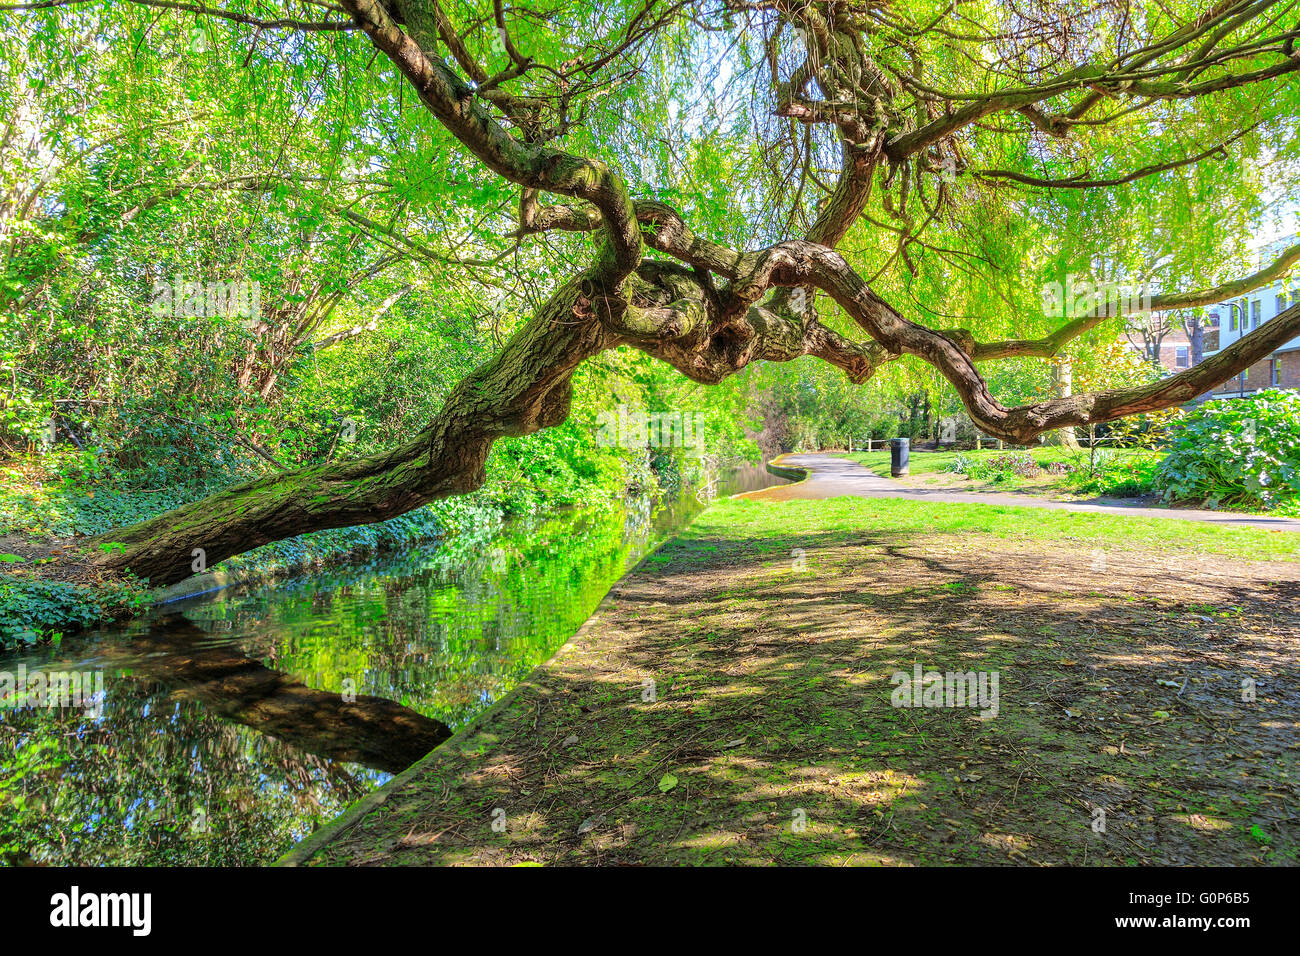 A weeping willow tree leaning over a canal and grassy tow path at New River Walk, Canonbury, London - Stock Image